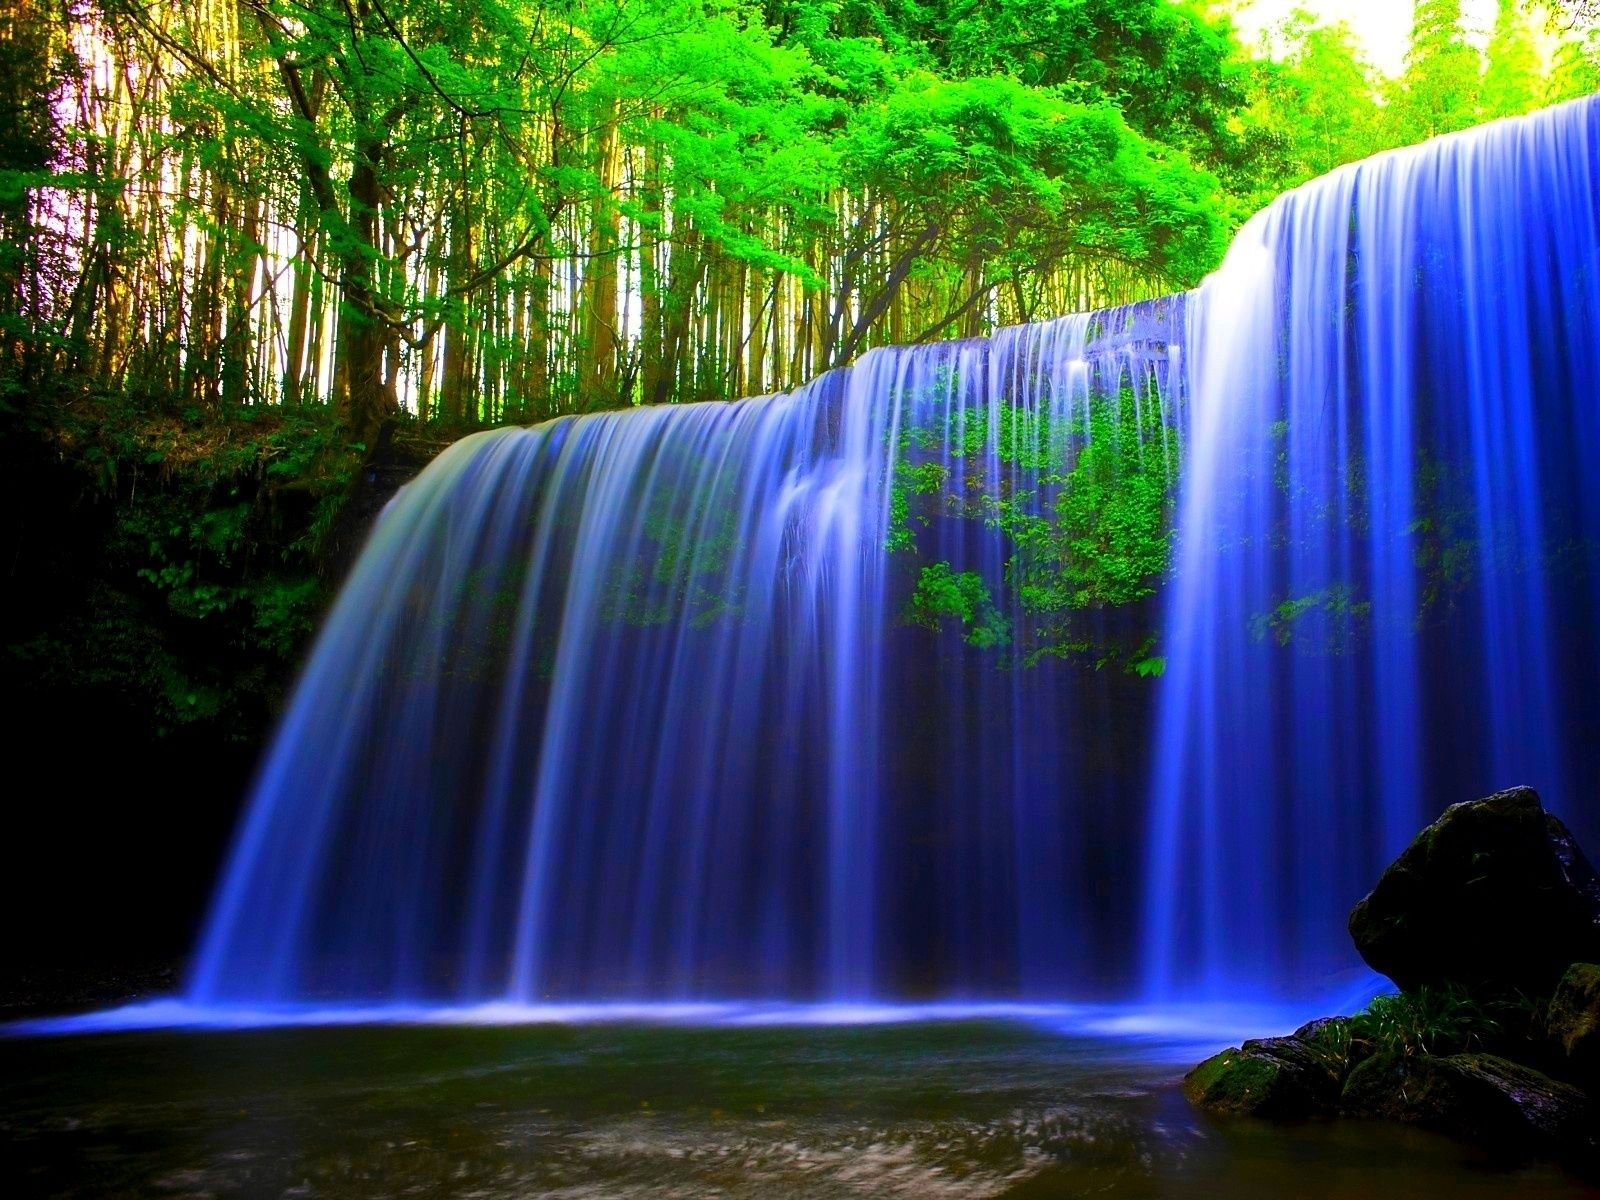 Love the long exposure! This waterfall is so beautiful mj